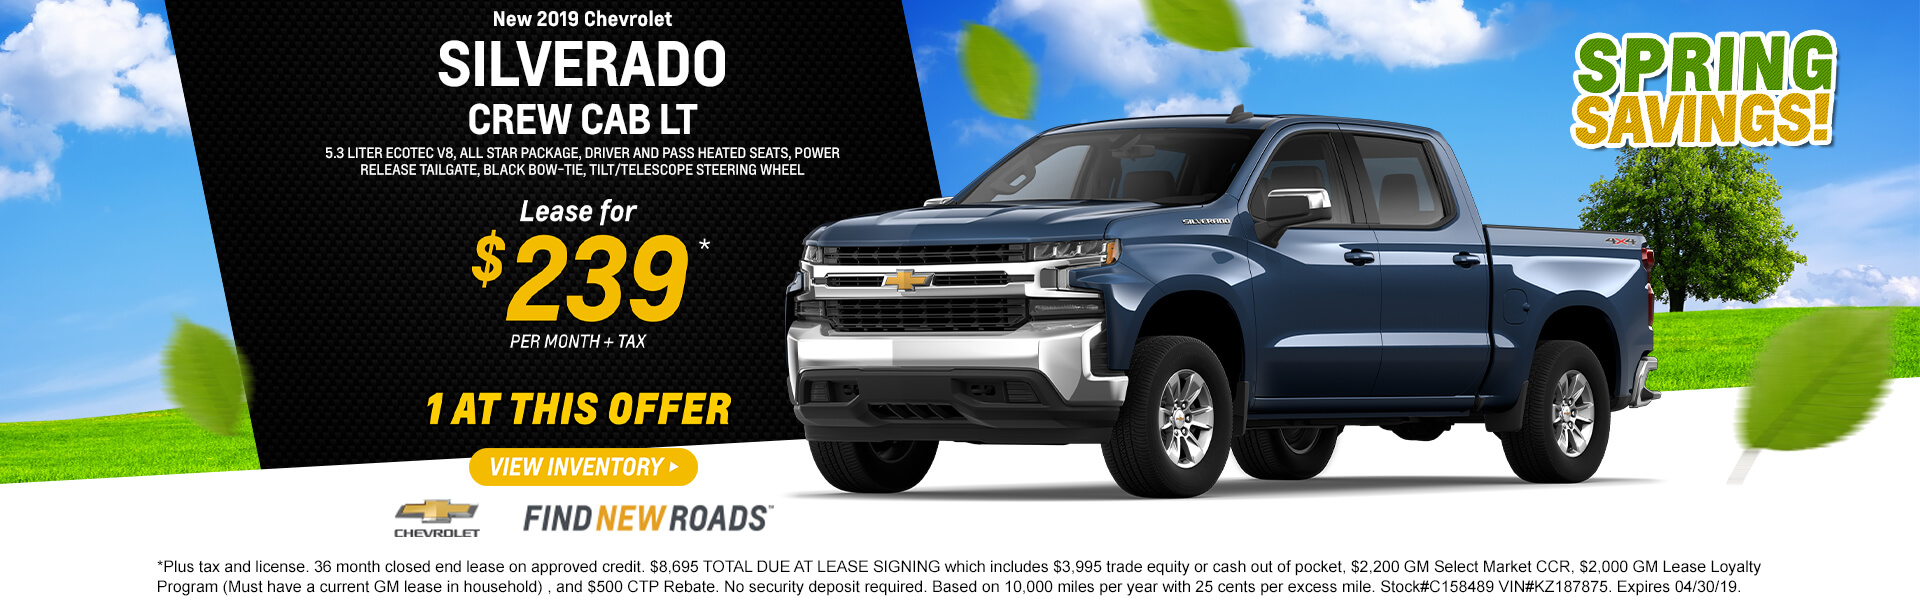 2019 Silverado Crew Cab Lease for $239 per month $8,695 TOTAL DUE AT LEASE SIGNING which includes $3,995 trade equity or cash out of pocket, $2,200 GM Select Market CCR, $2,000 GM Lease Loyalty Program (Must have a current GM lease in household) , and $500 CTP Rebate. No security deposit required. Based on 10,000 miles per year with 25 cents per excess mile. Stock#C158489 VIN#KZ187875. Expires 04/30/19.